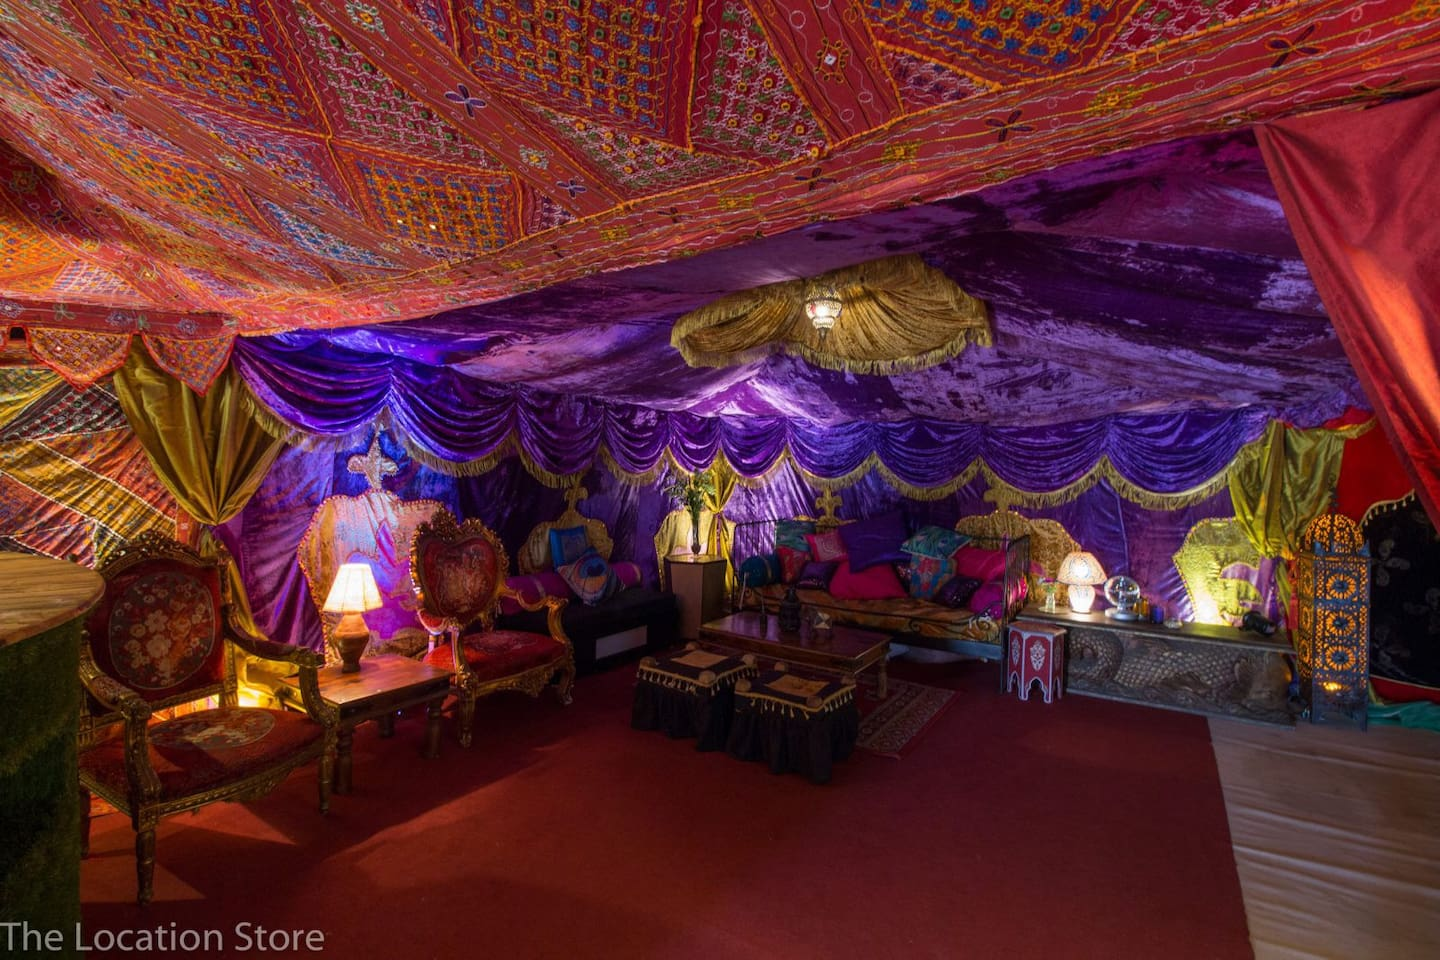 Step into Wonderland...this is just one little tiny corner of the incredible decedent party barn...